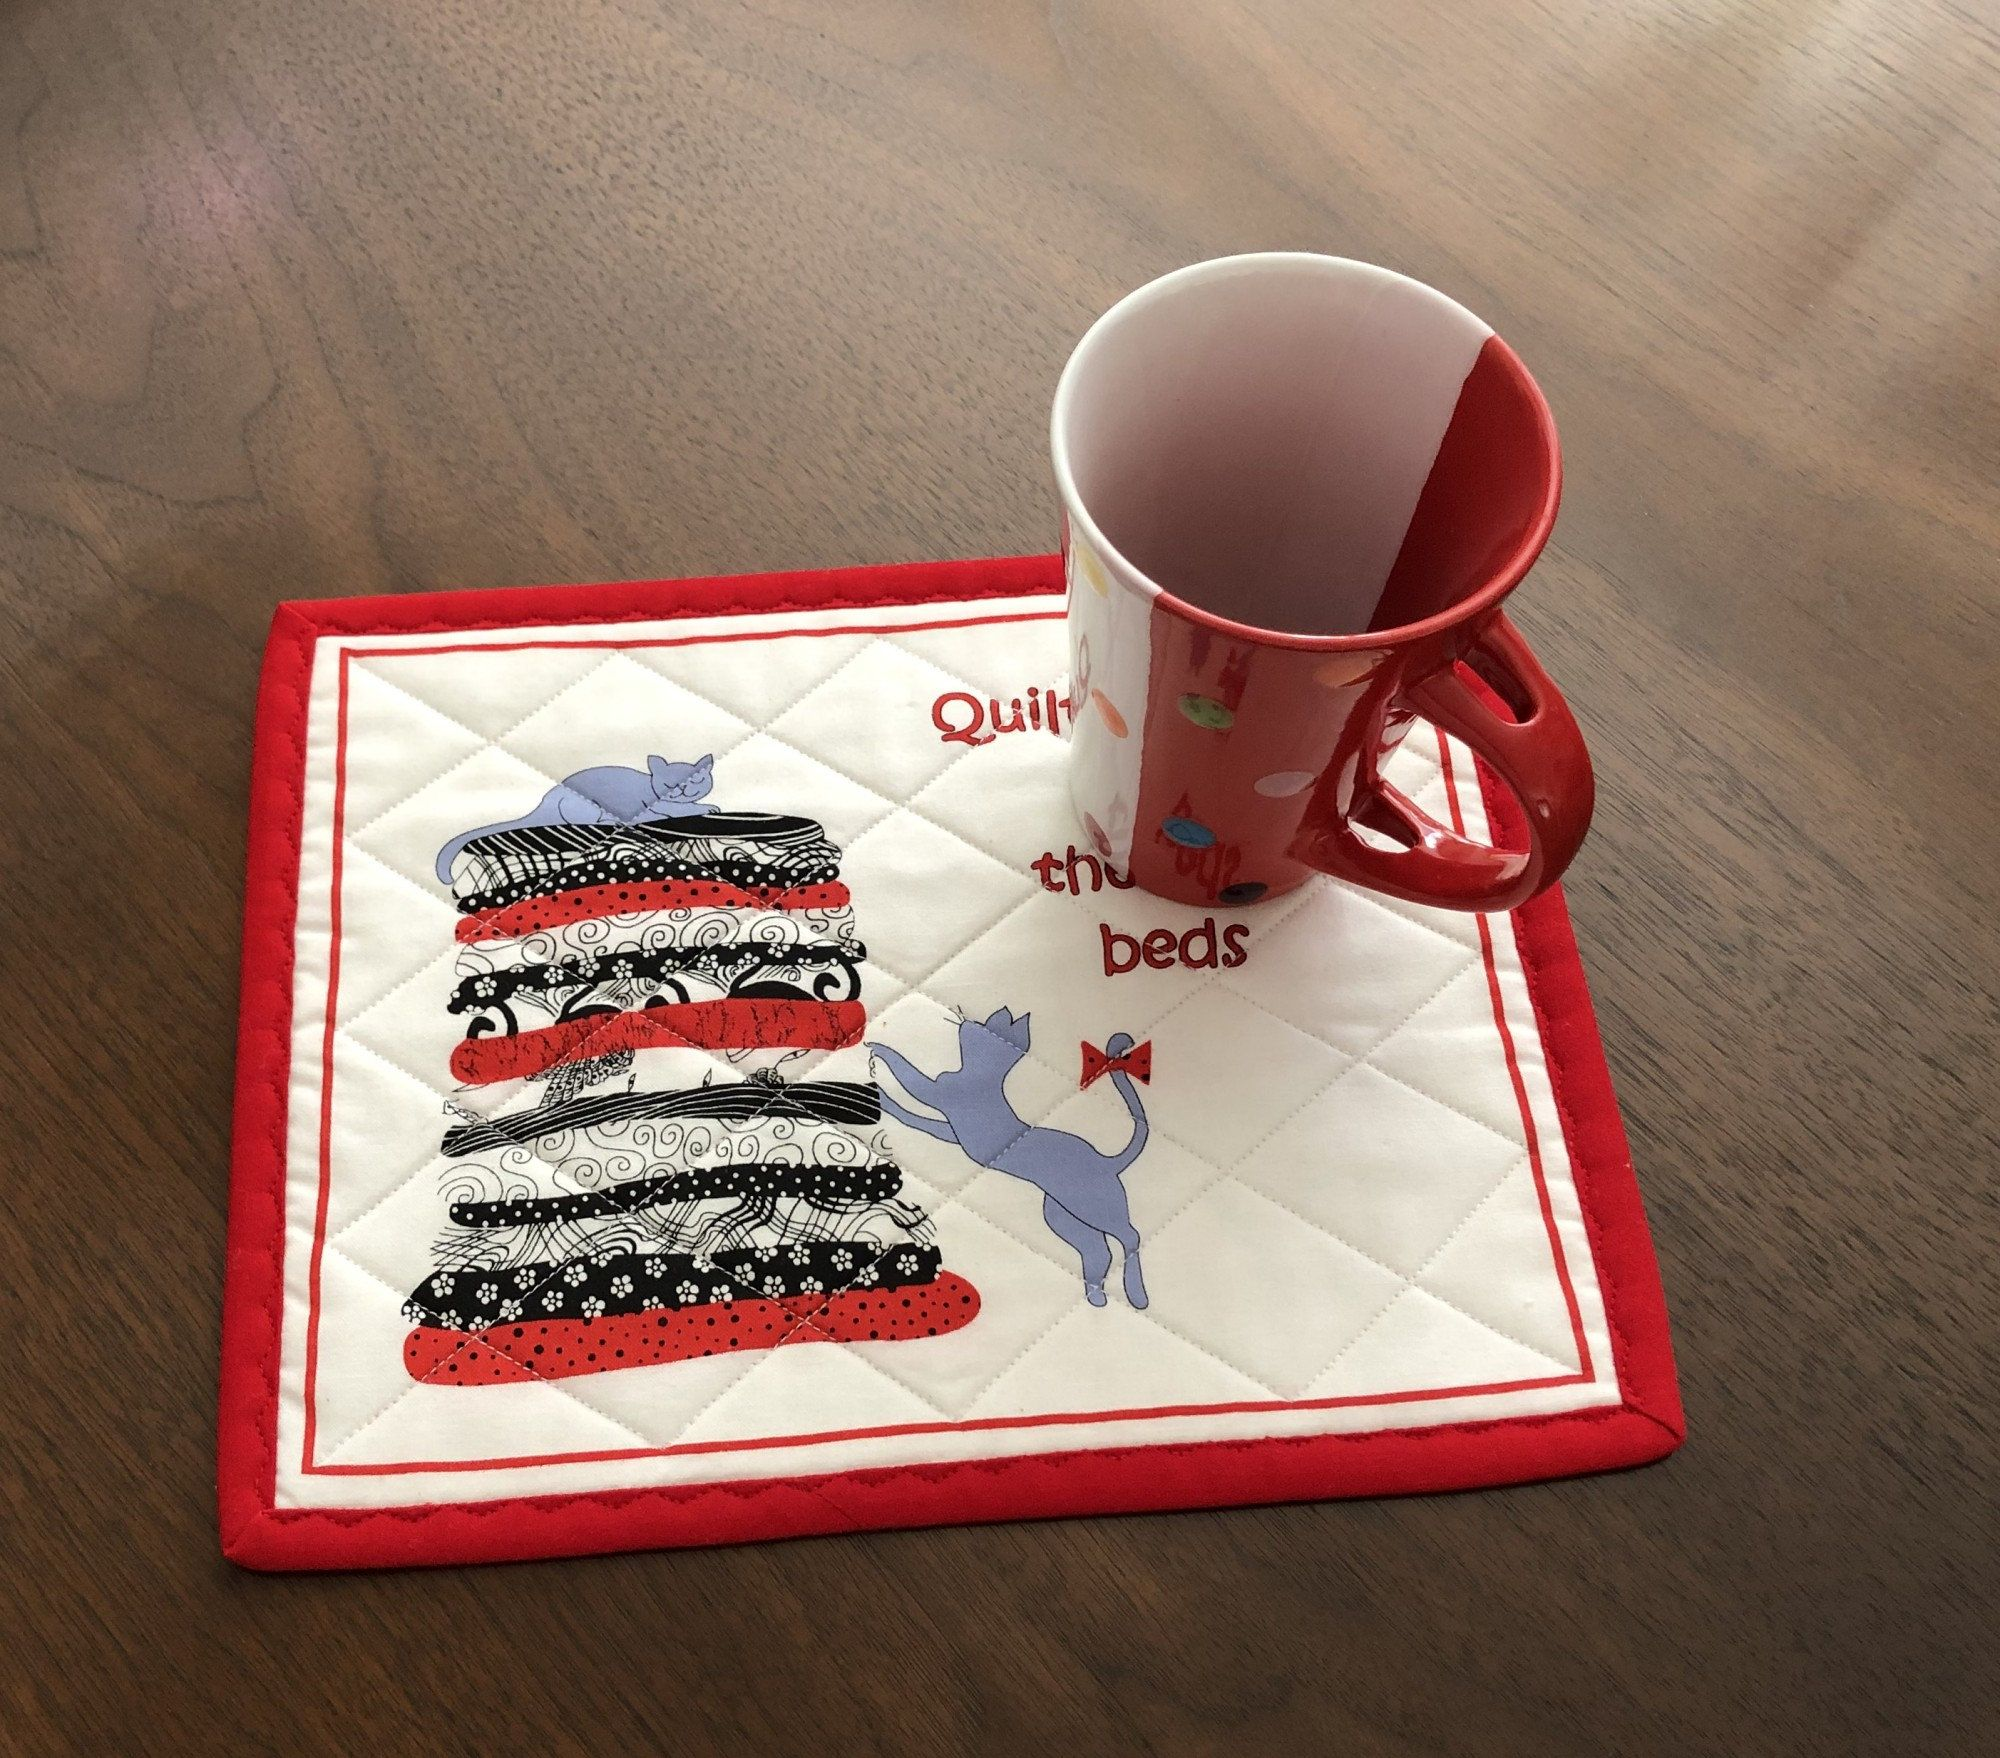 Quilters Mug Rug Quilted Snack Mat Handmade Red White And Black Mini Placemat Luncheon Mat Mini Quilt Mugrug Mouse Pad Mug Rugs Mugs Handmade